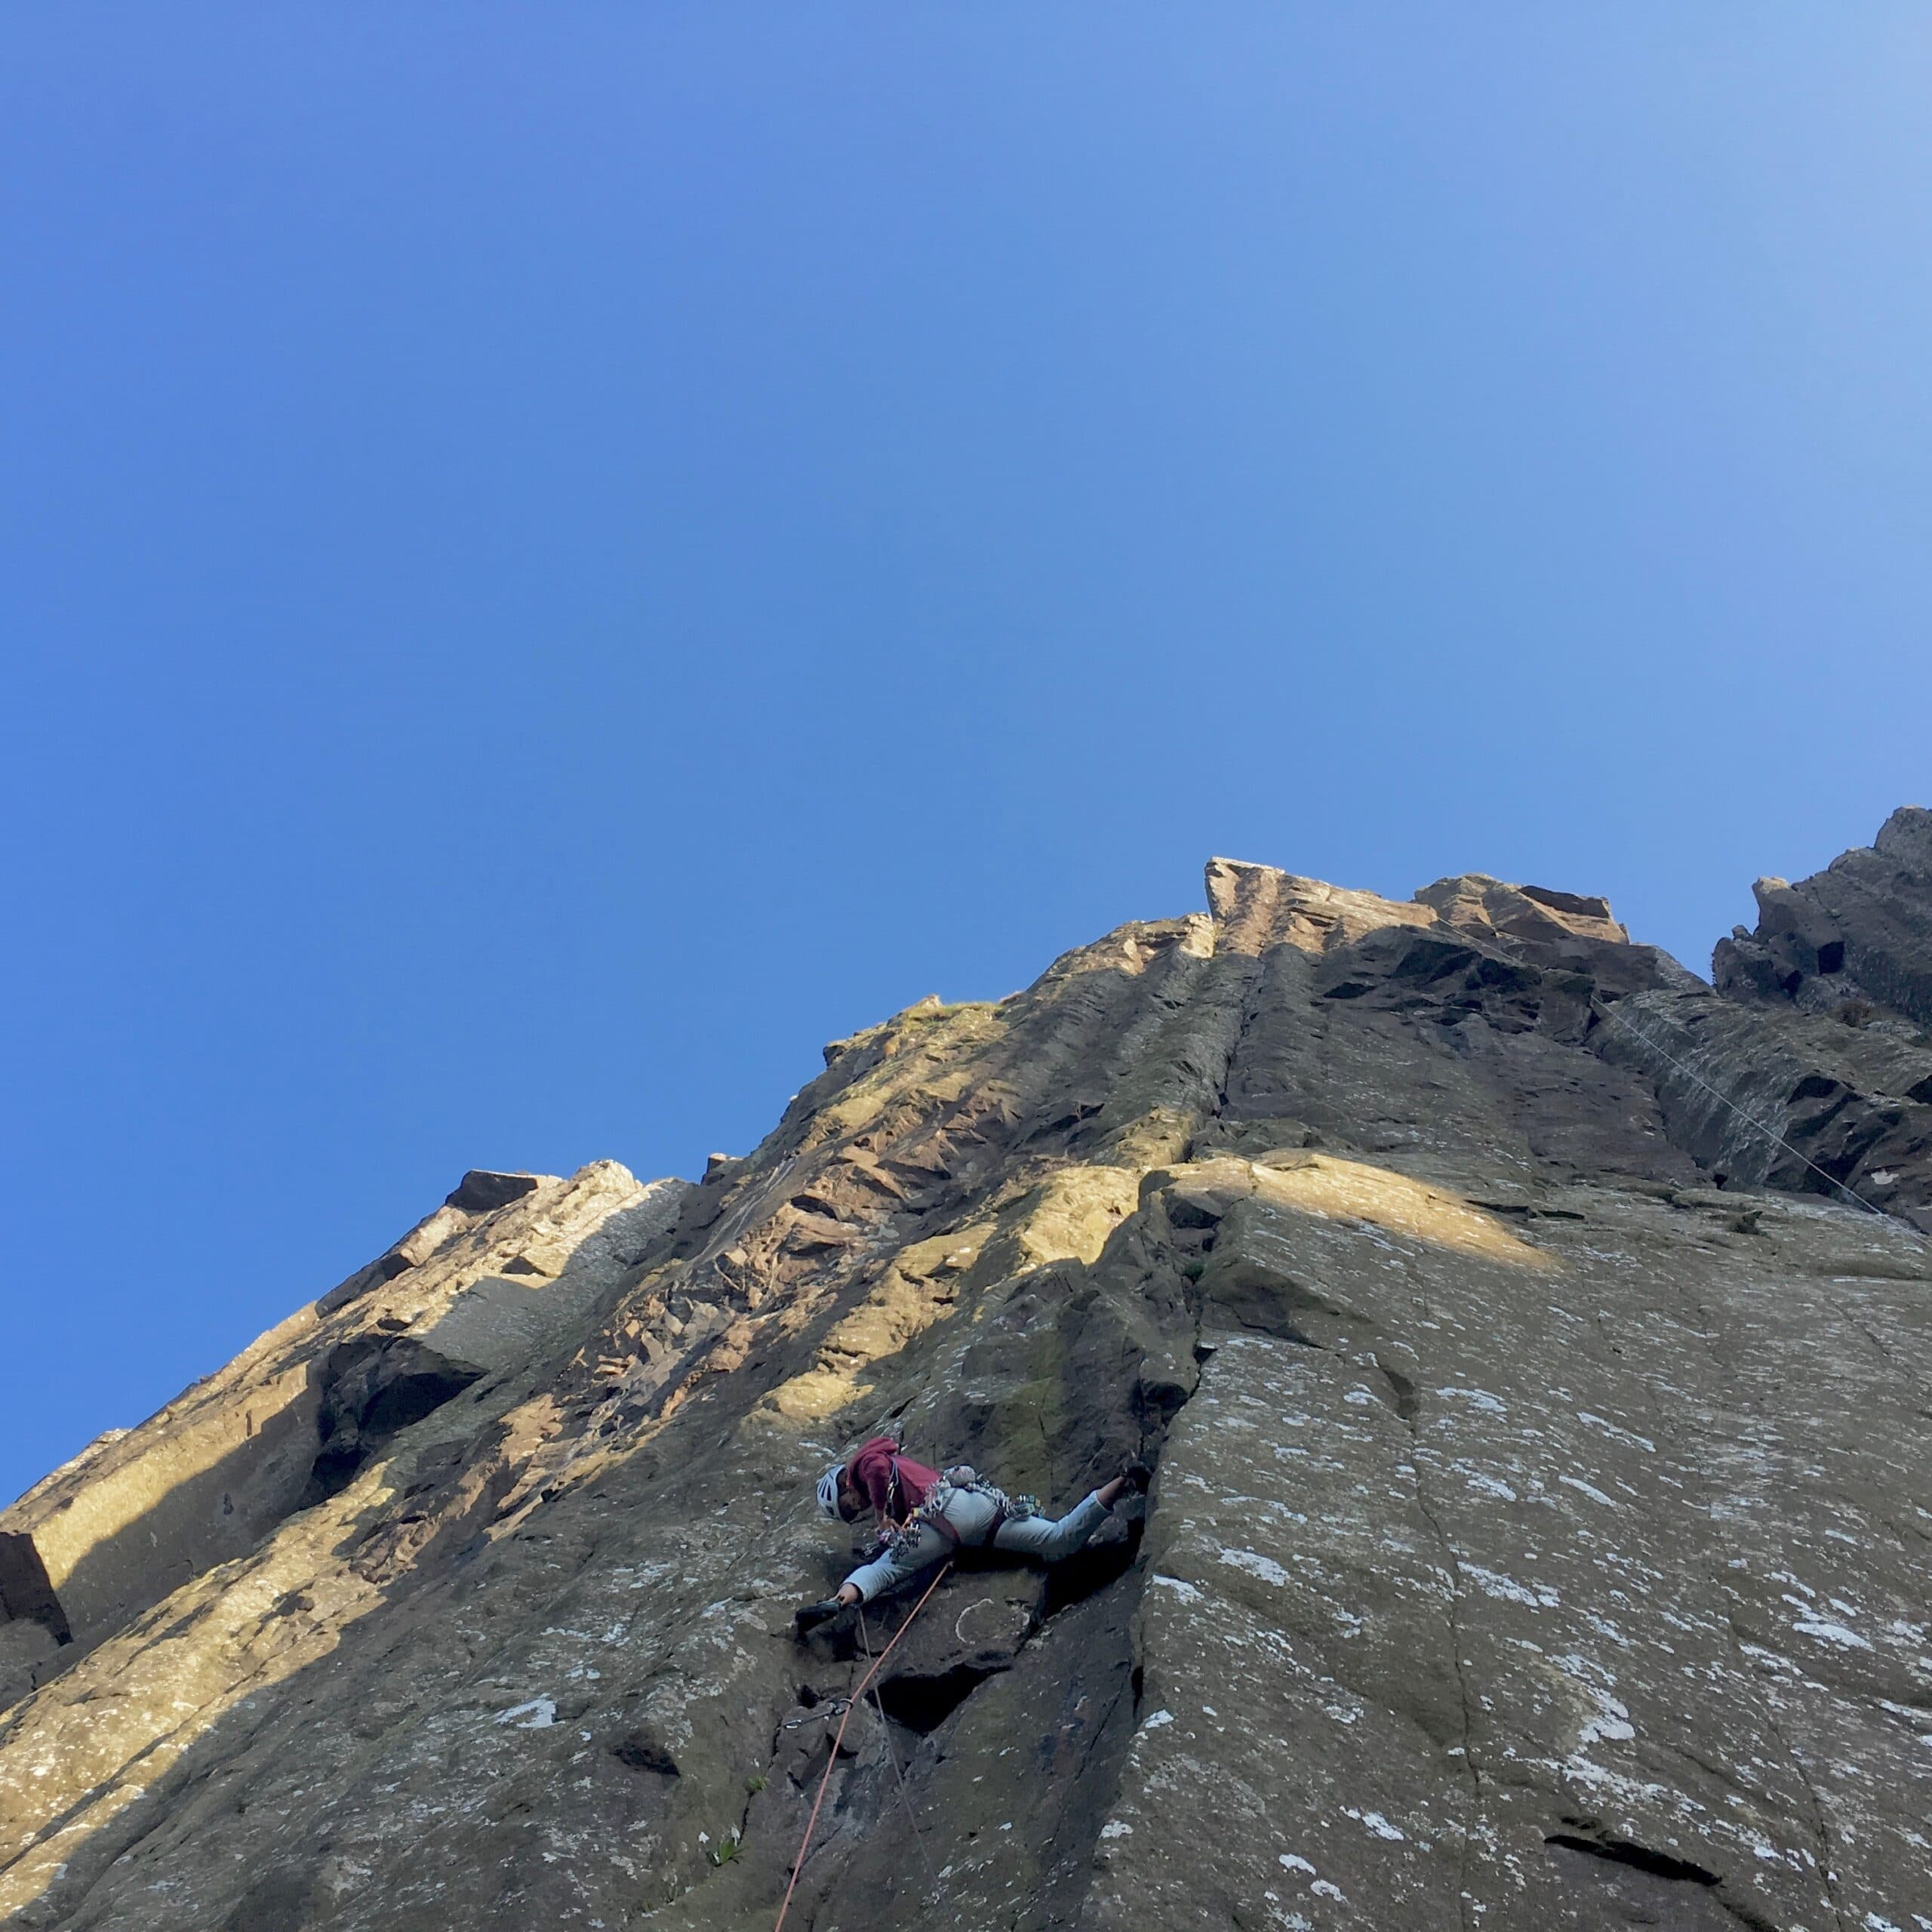 Heather cruising up Halloween, E4 6a. The second pitch is an unrelenting crack which stretches for 45m with barely a move easier than 5b.